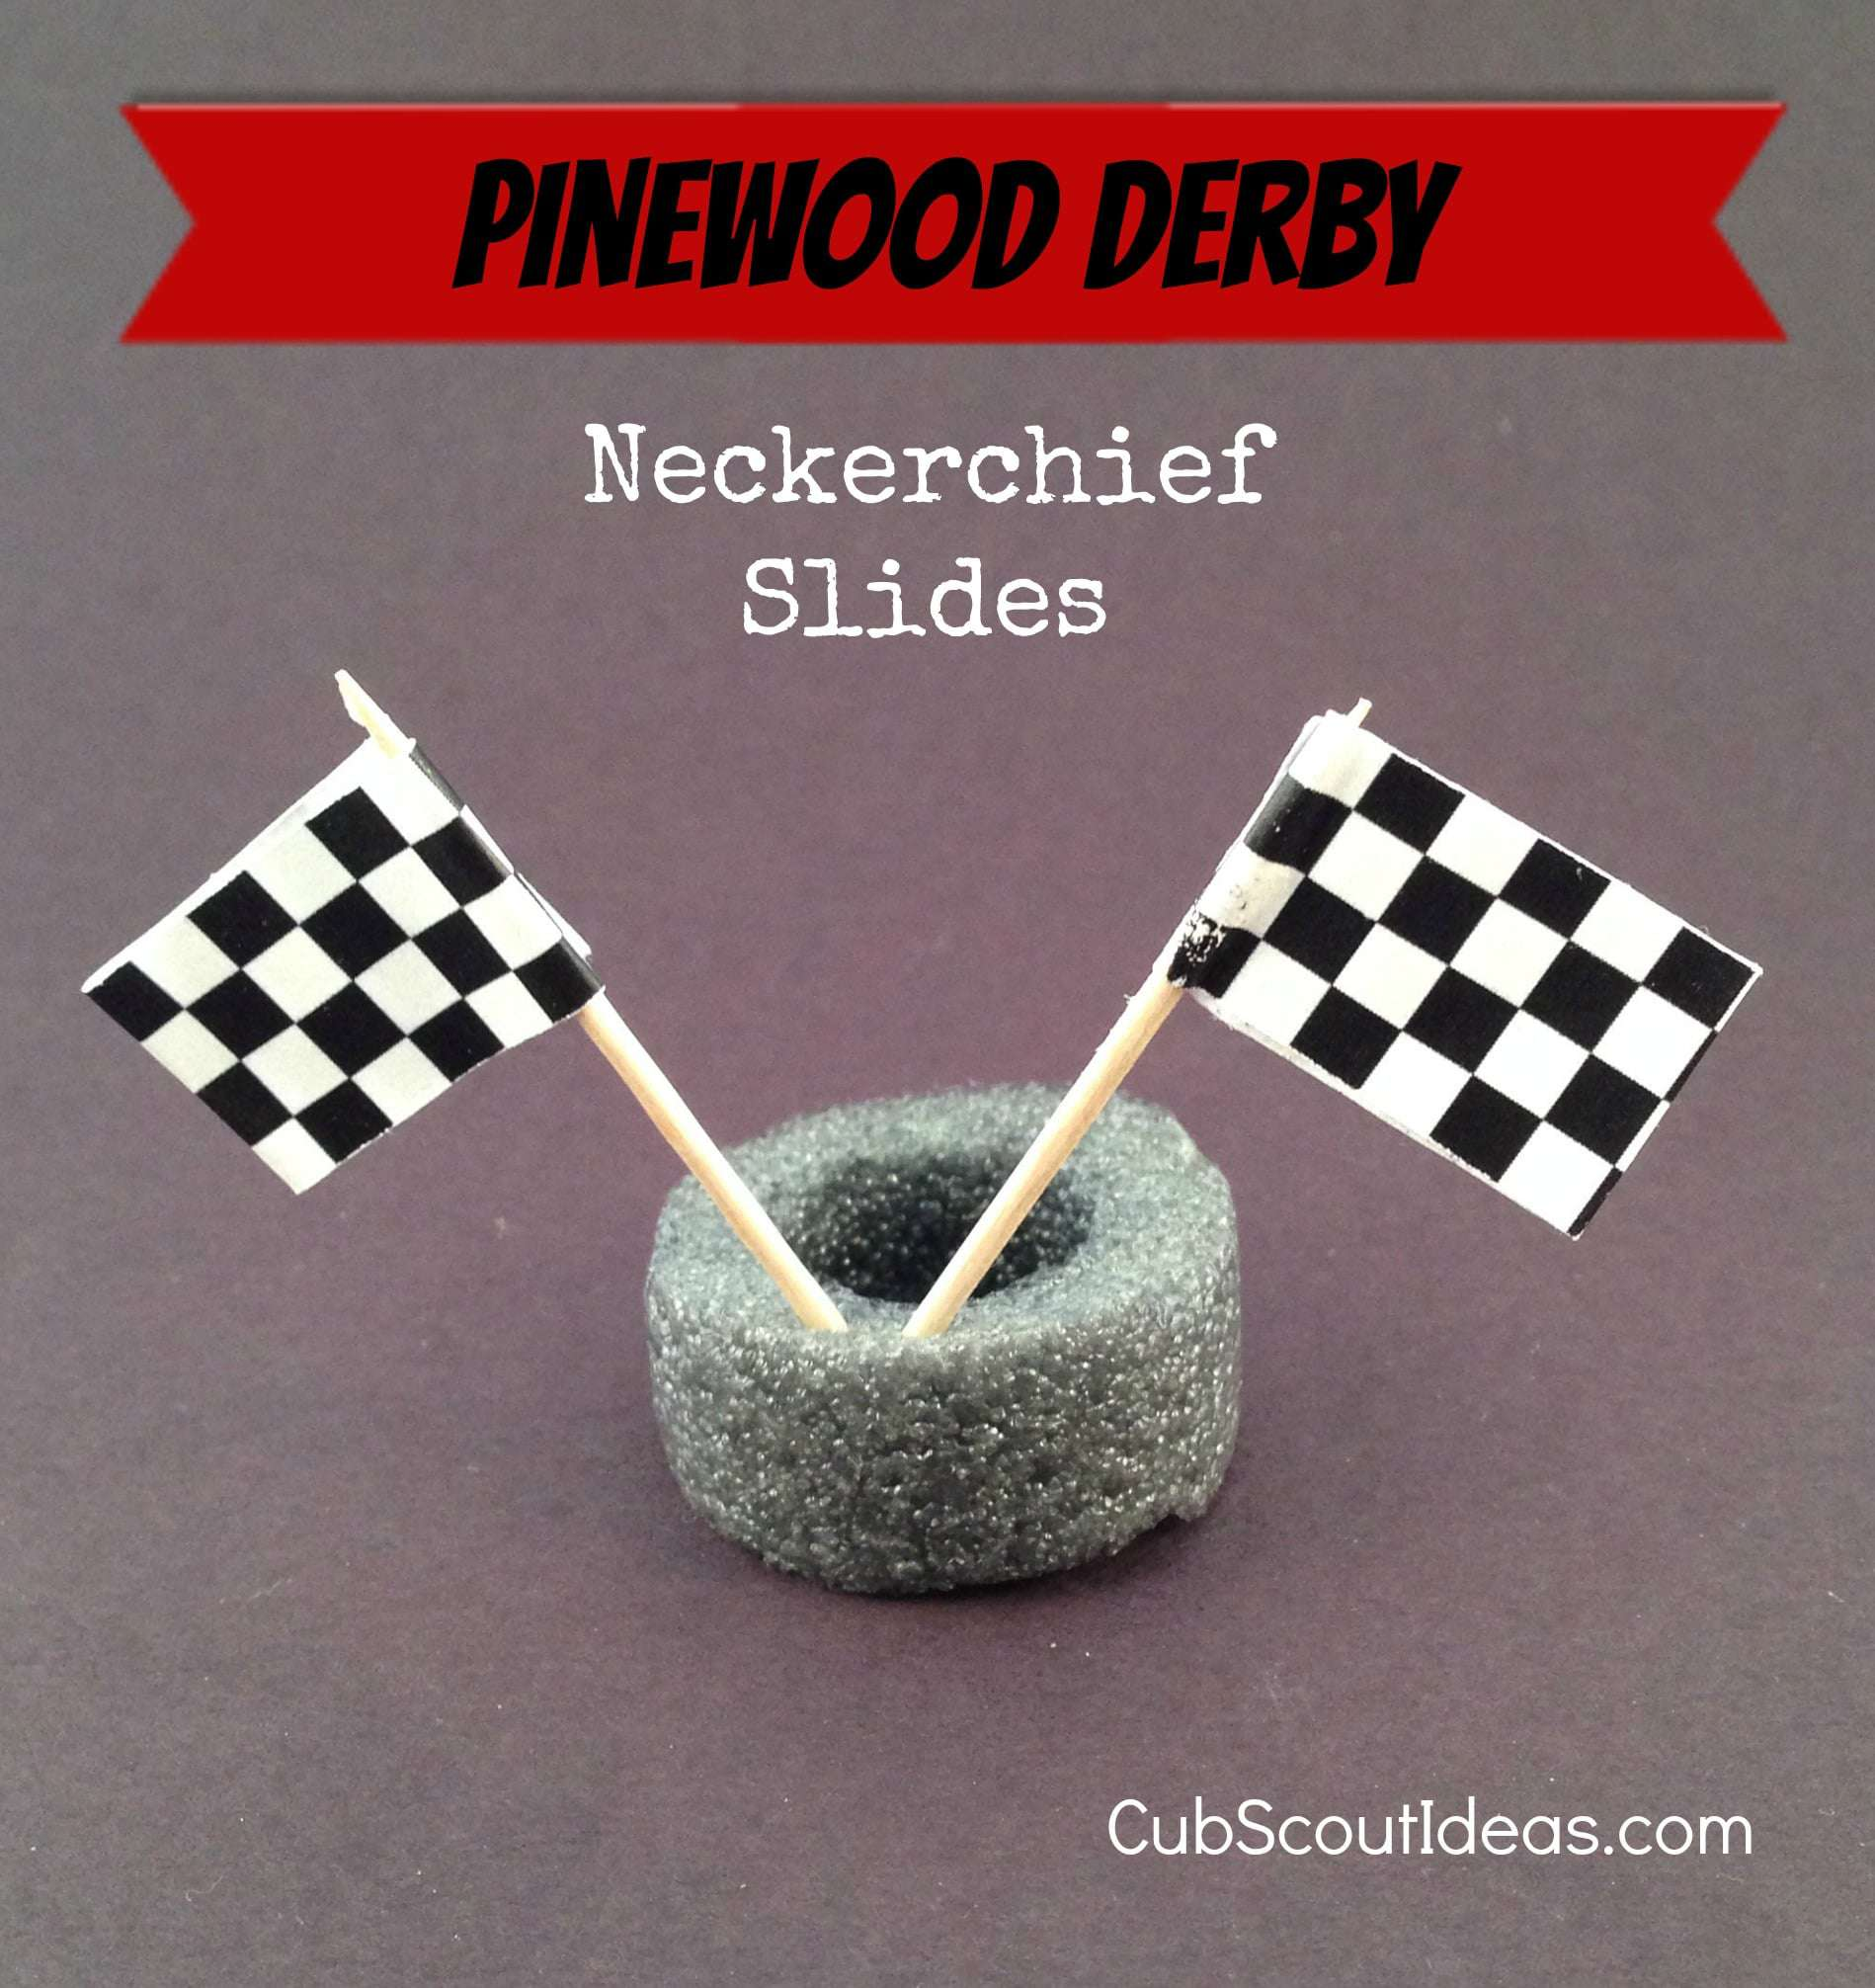 cub scout pinewood derby neckerchief slide 2